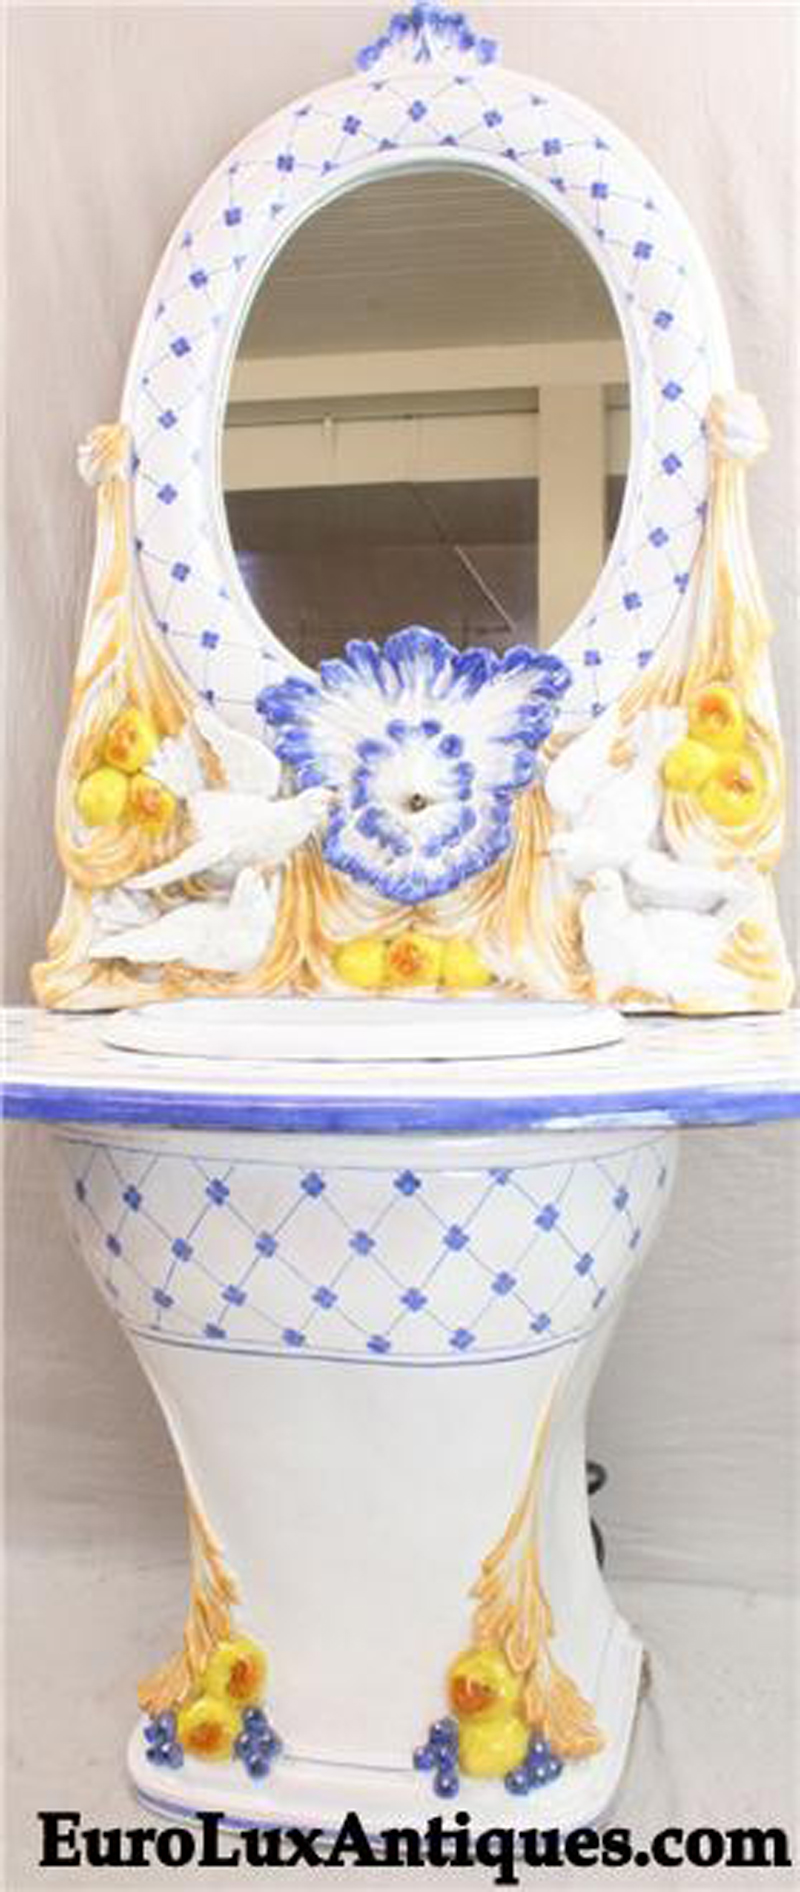 Italian Deruta ceramic fountain